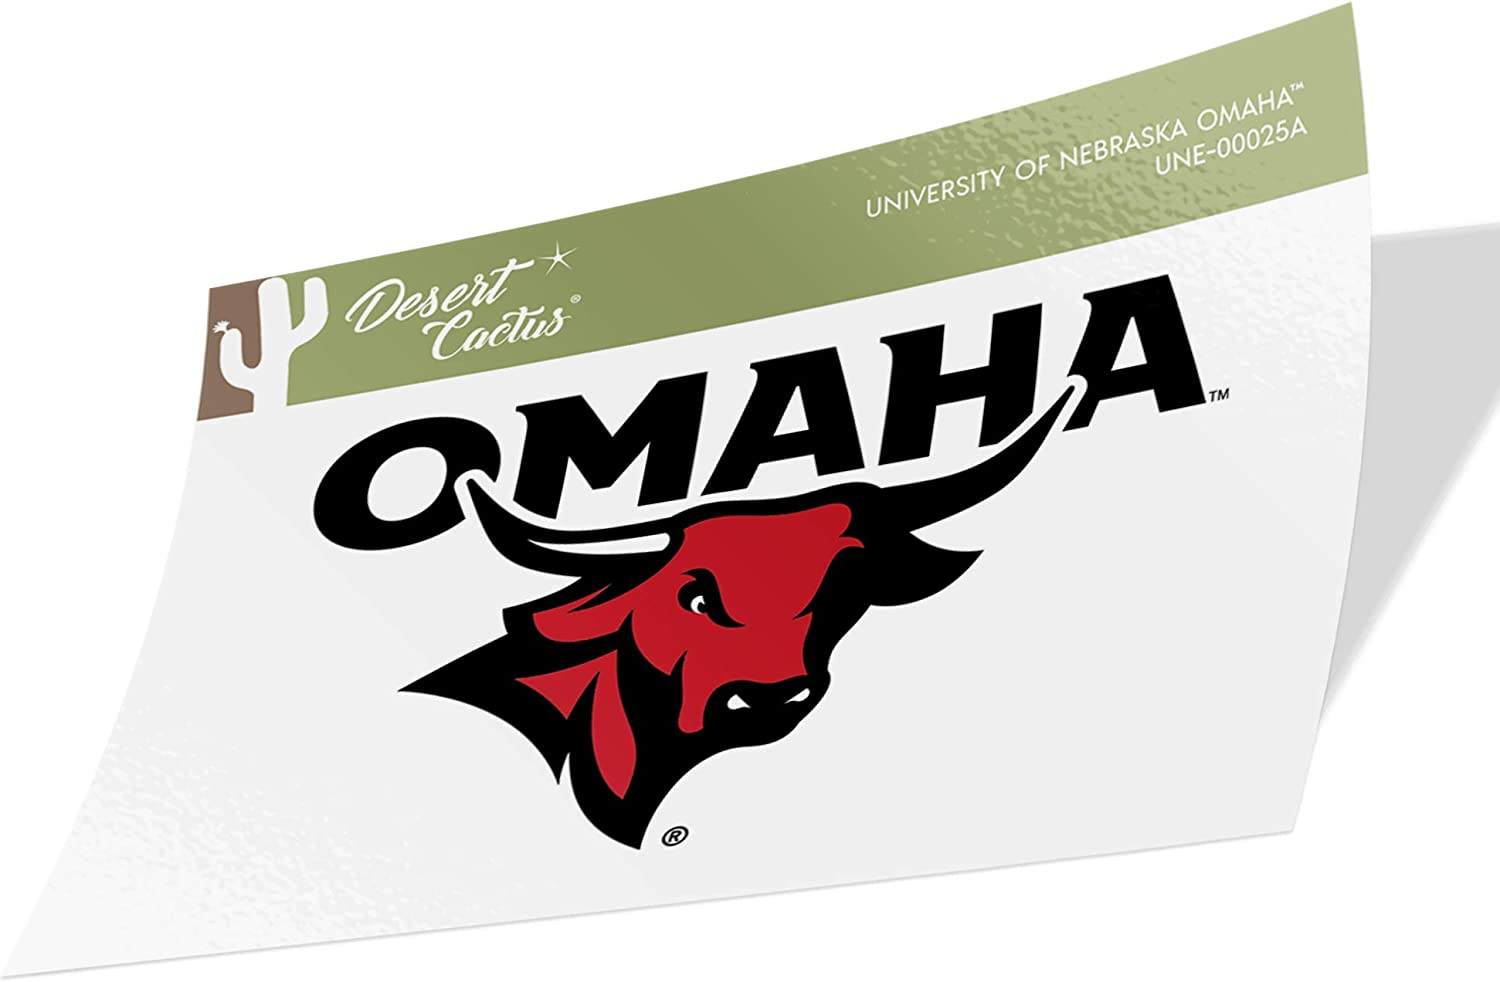 University of Nebraska at Omaha UNO Mavericks NCAA Vinyl Decal Laptop Water Bottle Car Scrapbook (Sticker - 00025A)